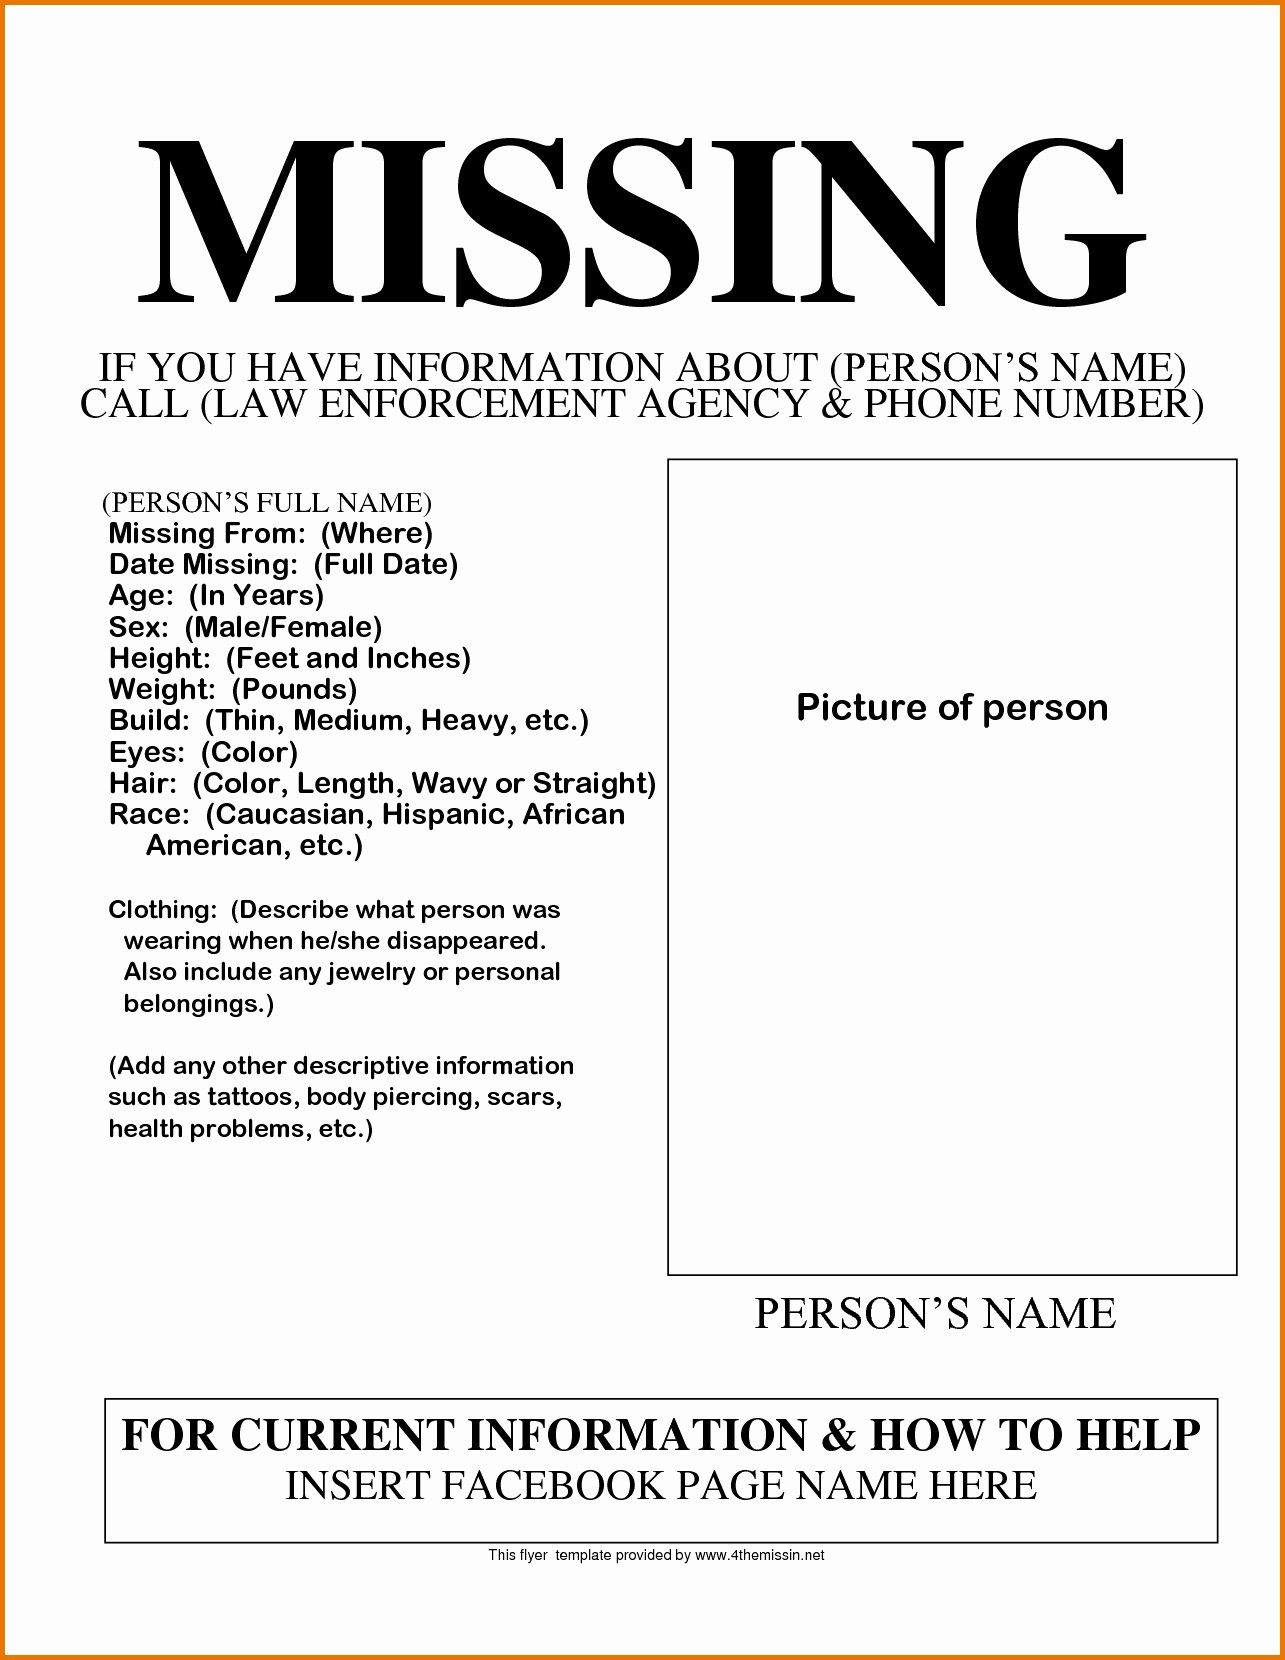 Missing Person Poster Template Best Of Funny Flyers Printable Lovely Missing Person Template Funny In 2020 Missing Posters Poster Template Person Template